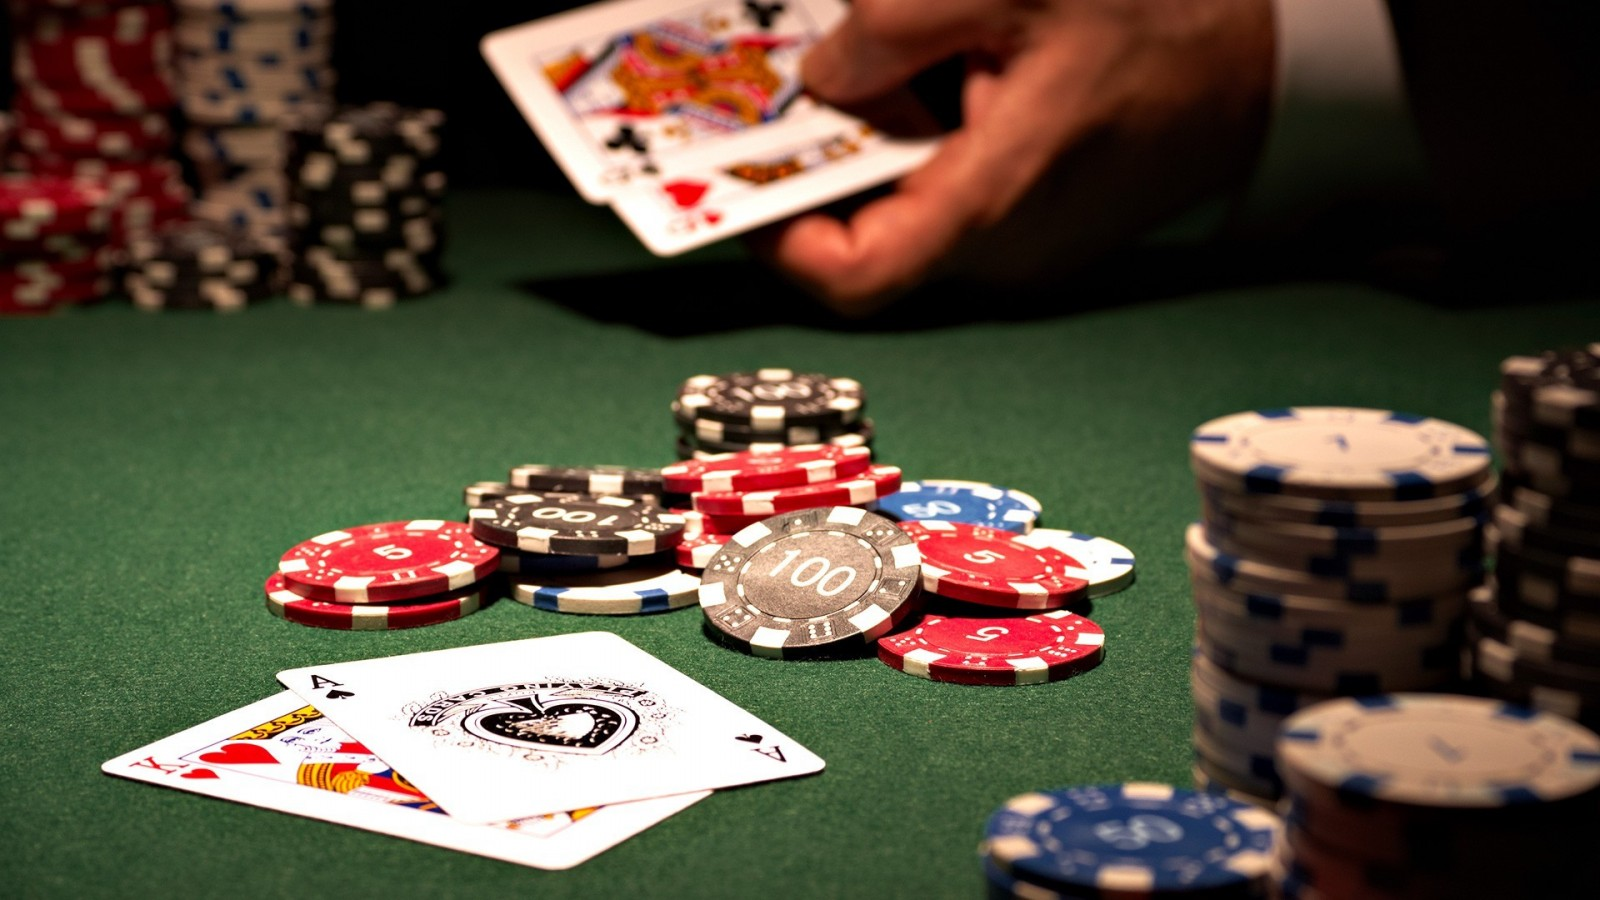 Things I Wish I Knew About Gambling